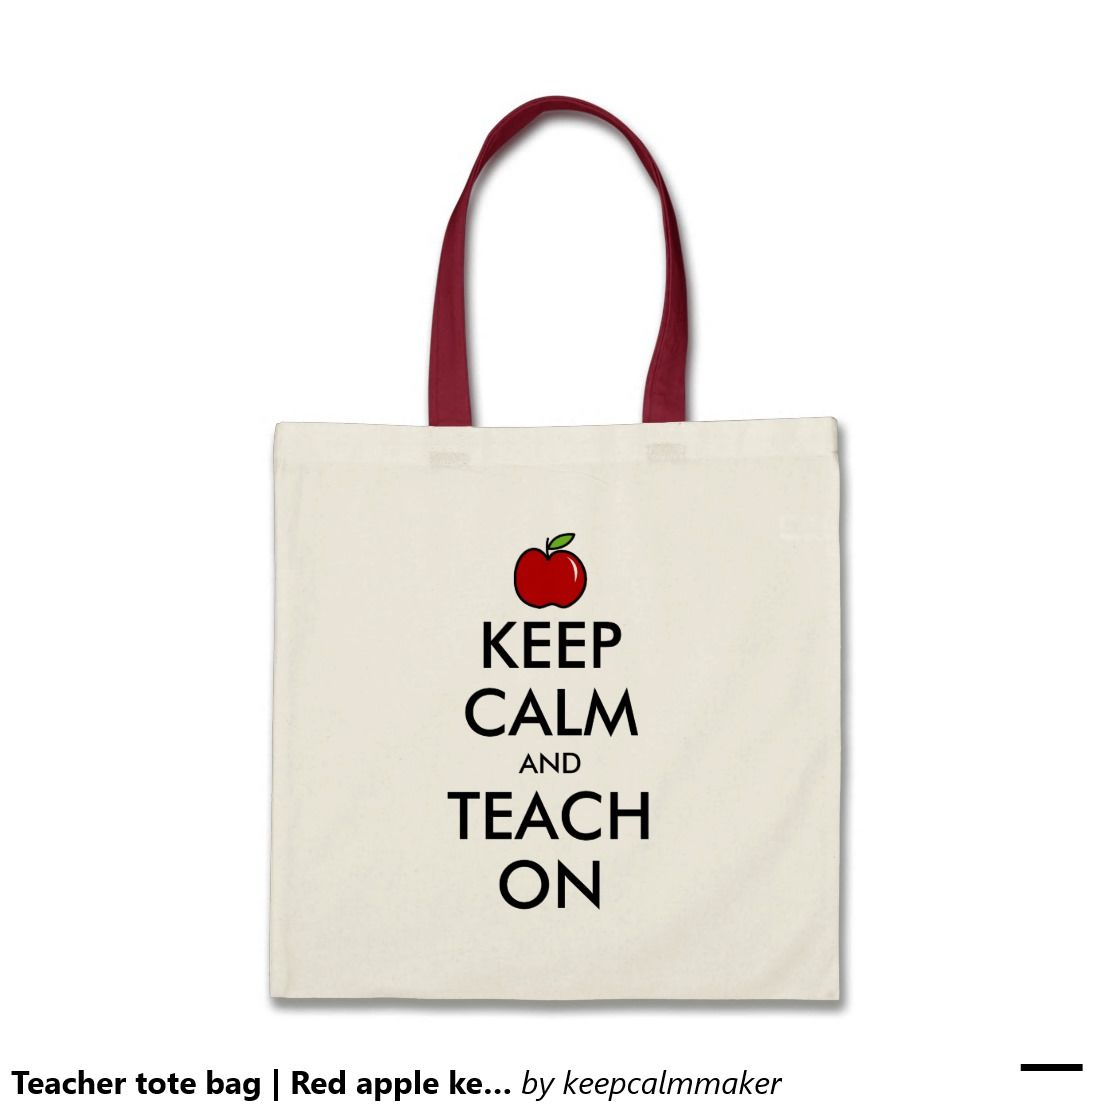 Bags for school teachers - Red Apple Teacher Tote Bag With Funny Quote Keep Calm And Teach On